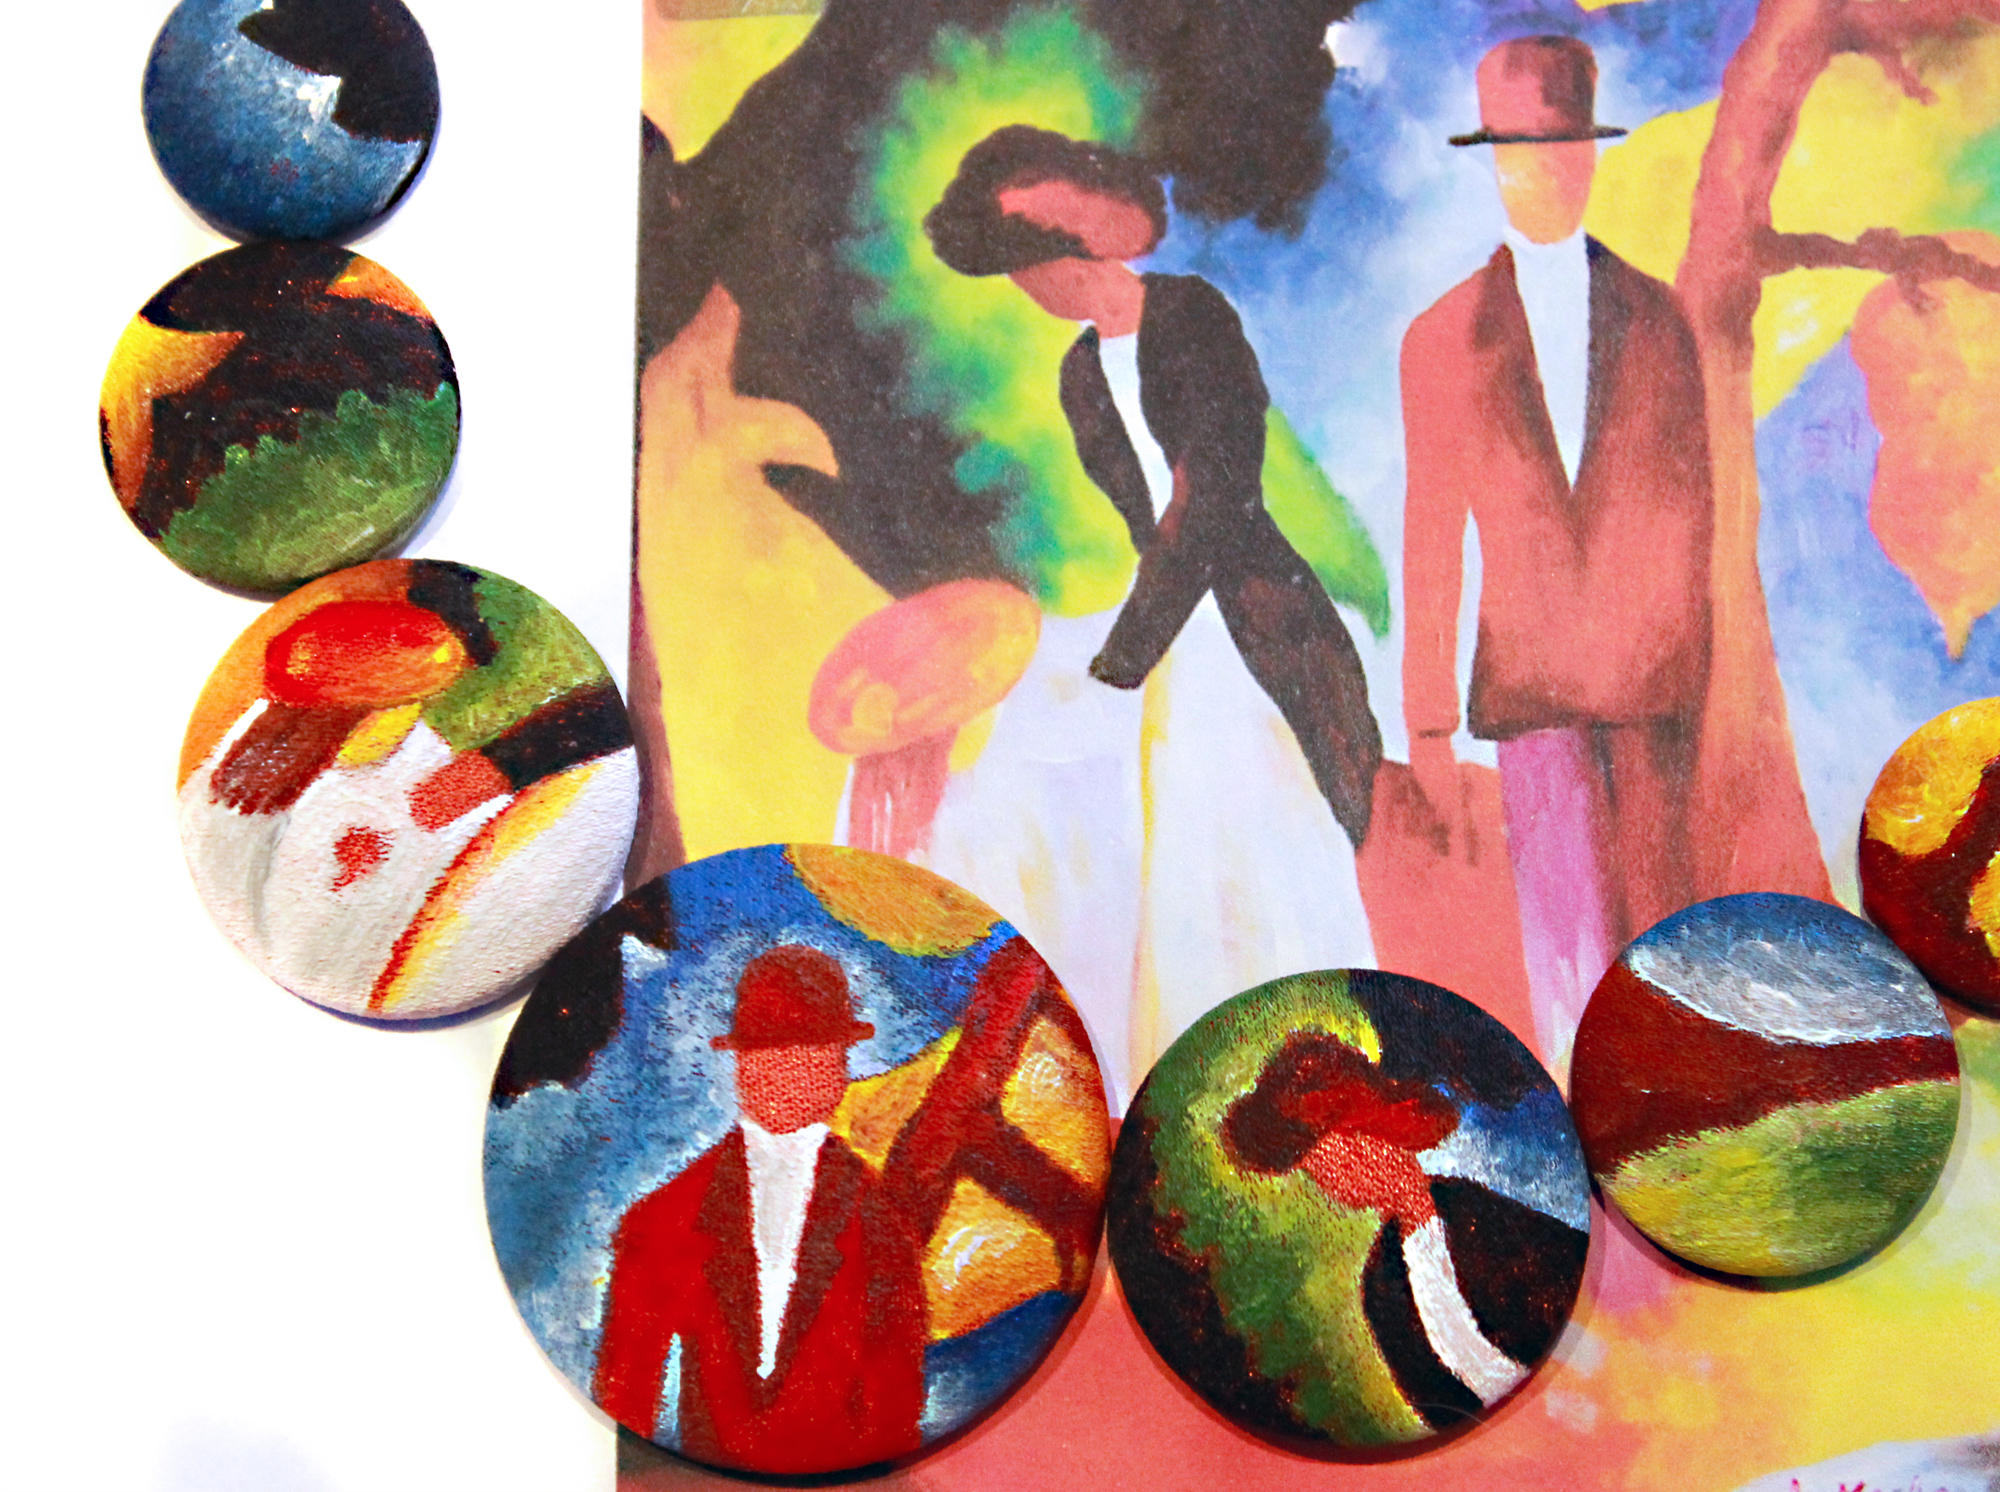 People at the Blue Lake_August Macke_collana